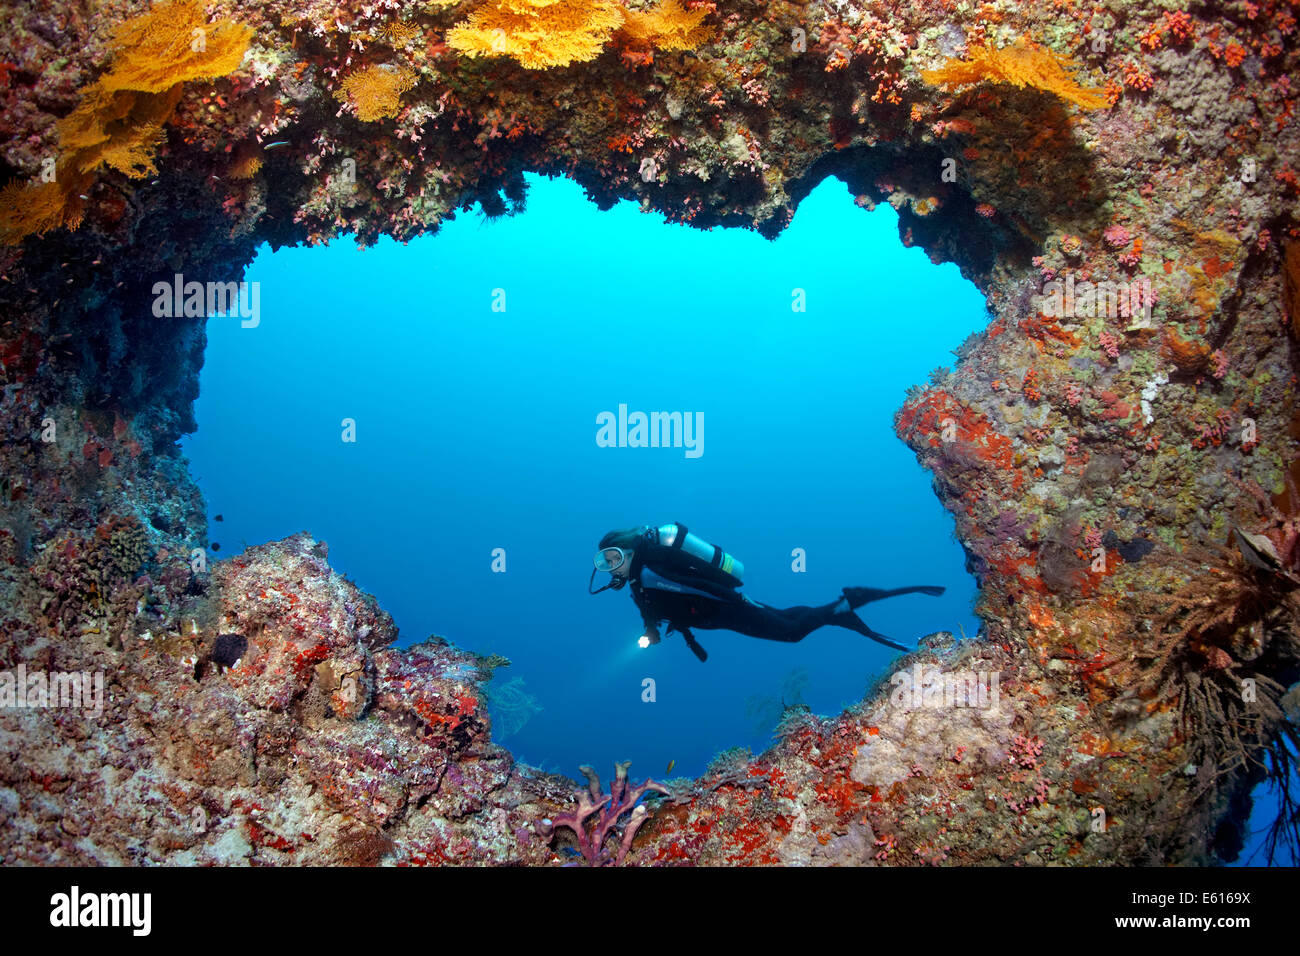 Scuba diver diving in front of a cave entrance, Lhaviyani Atoll, Indian Ocean, Maldives - Stock Image